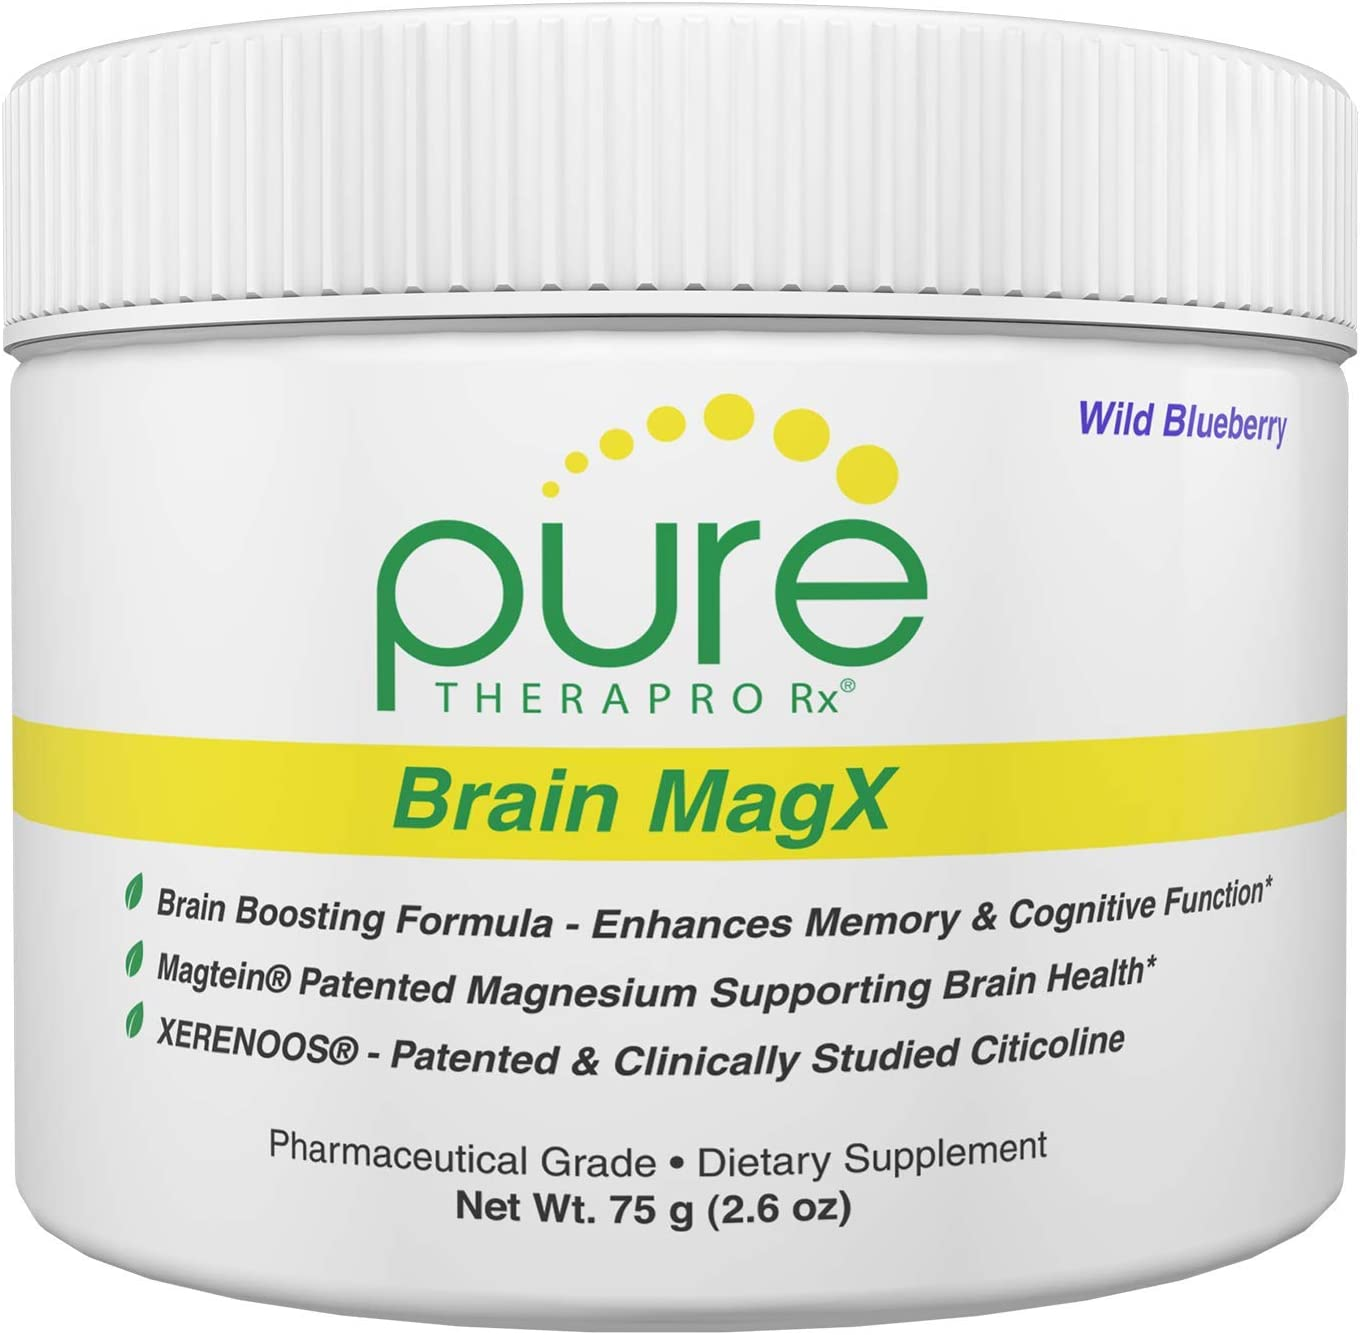 Brain MagX - Wild Blueberry 30 Servings   Nootropic Brain Boosting Formula Containing: Magtein, Xerenoos (Citicoline) & Huperzine A   Enhance Focus, Boost Concentration & Improve Memory   Vegan